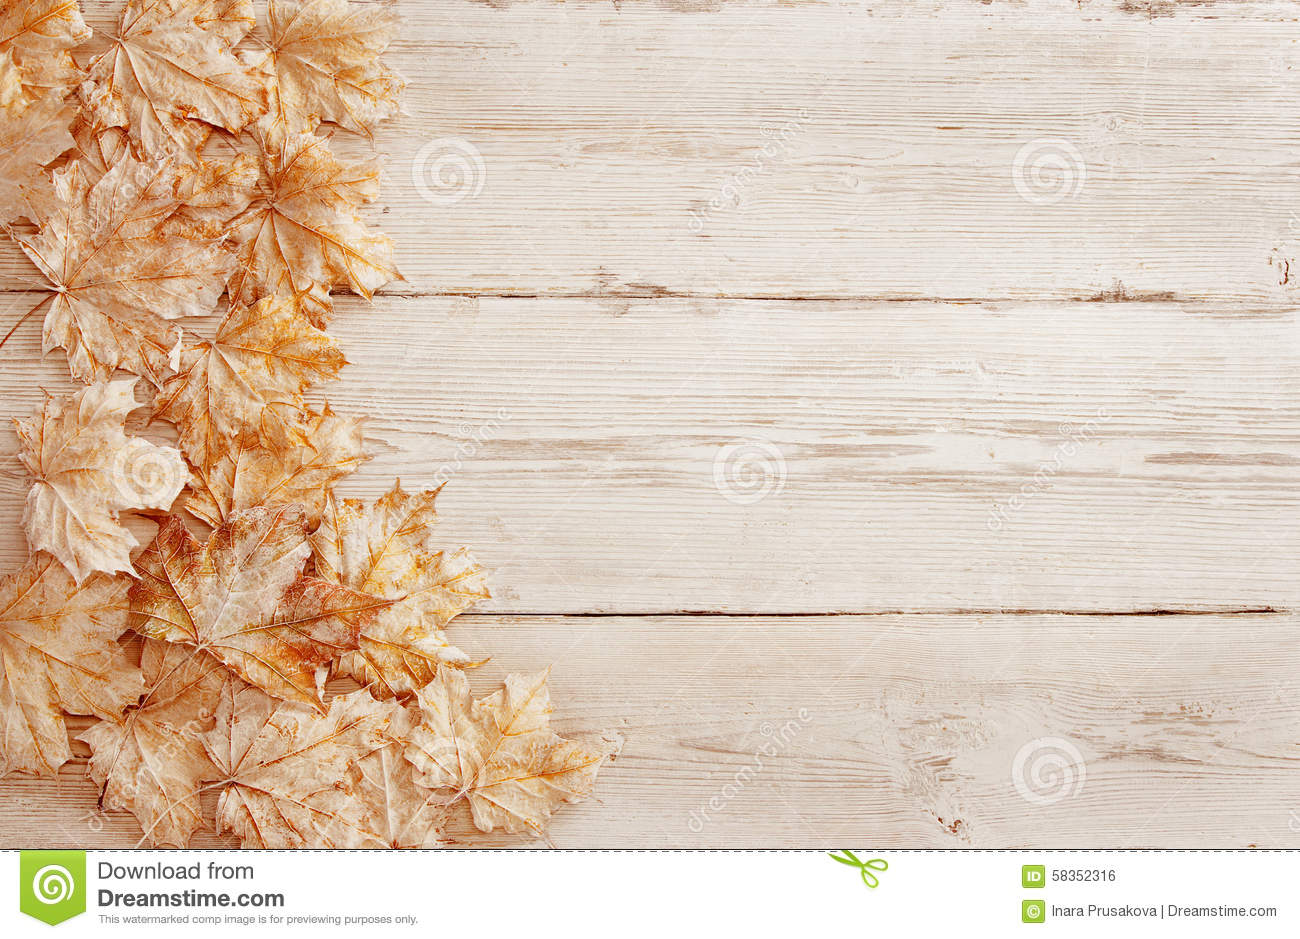 Drawing Floor Plans Wood Background White Leaves Wooden Grain Texture Plank